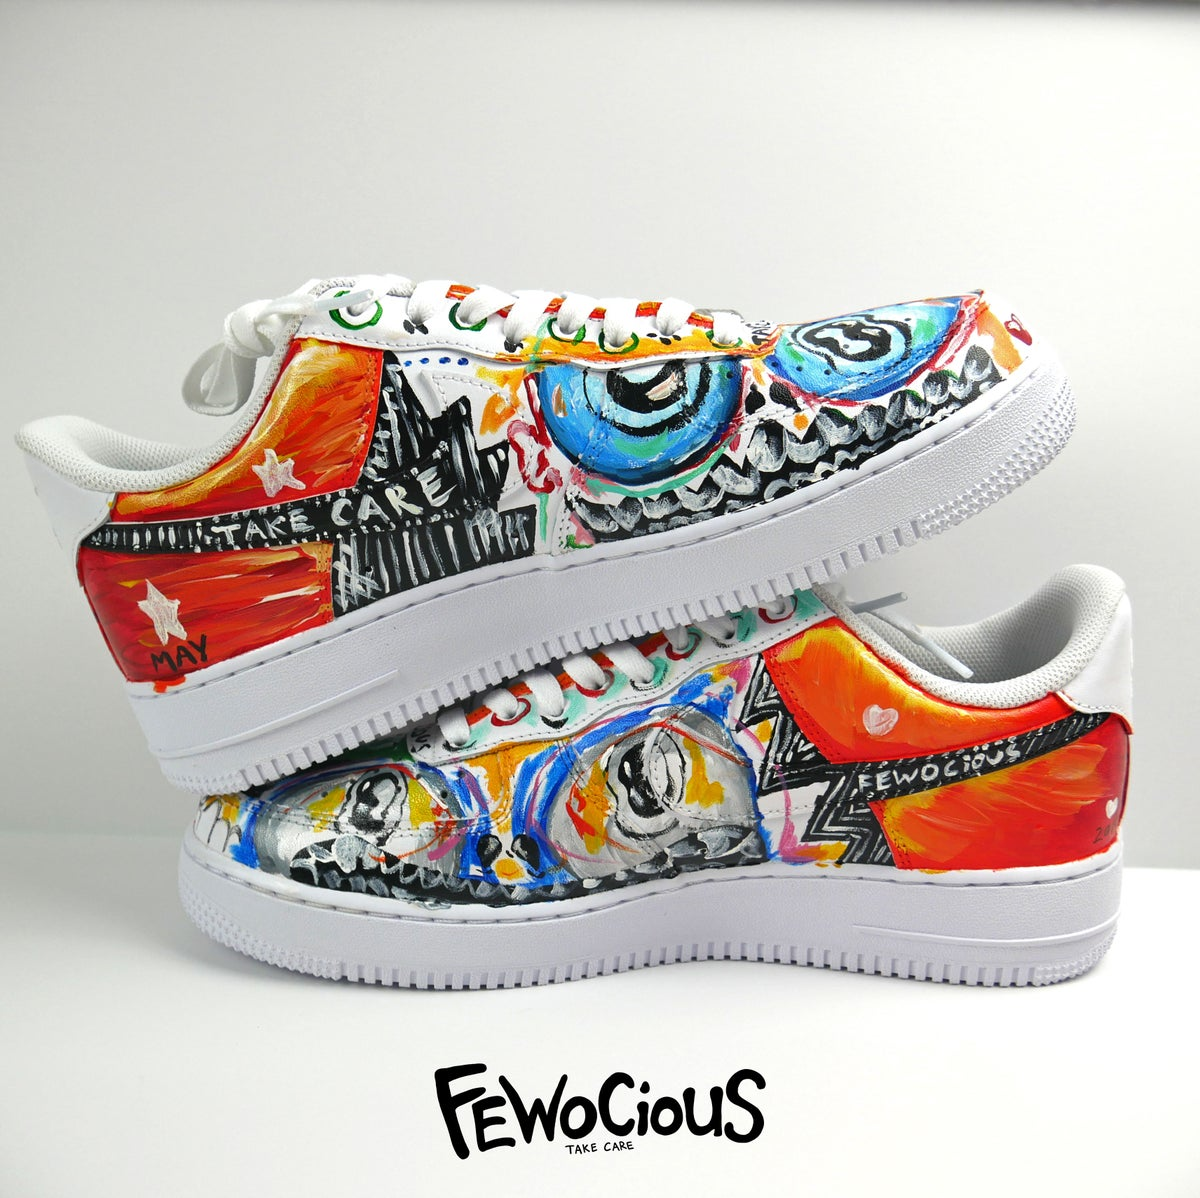 FIRST EVER FEWOCiOUS CUSTOM PAINTED SHOE